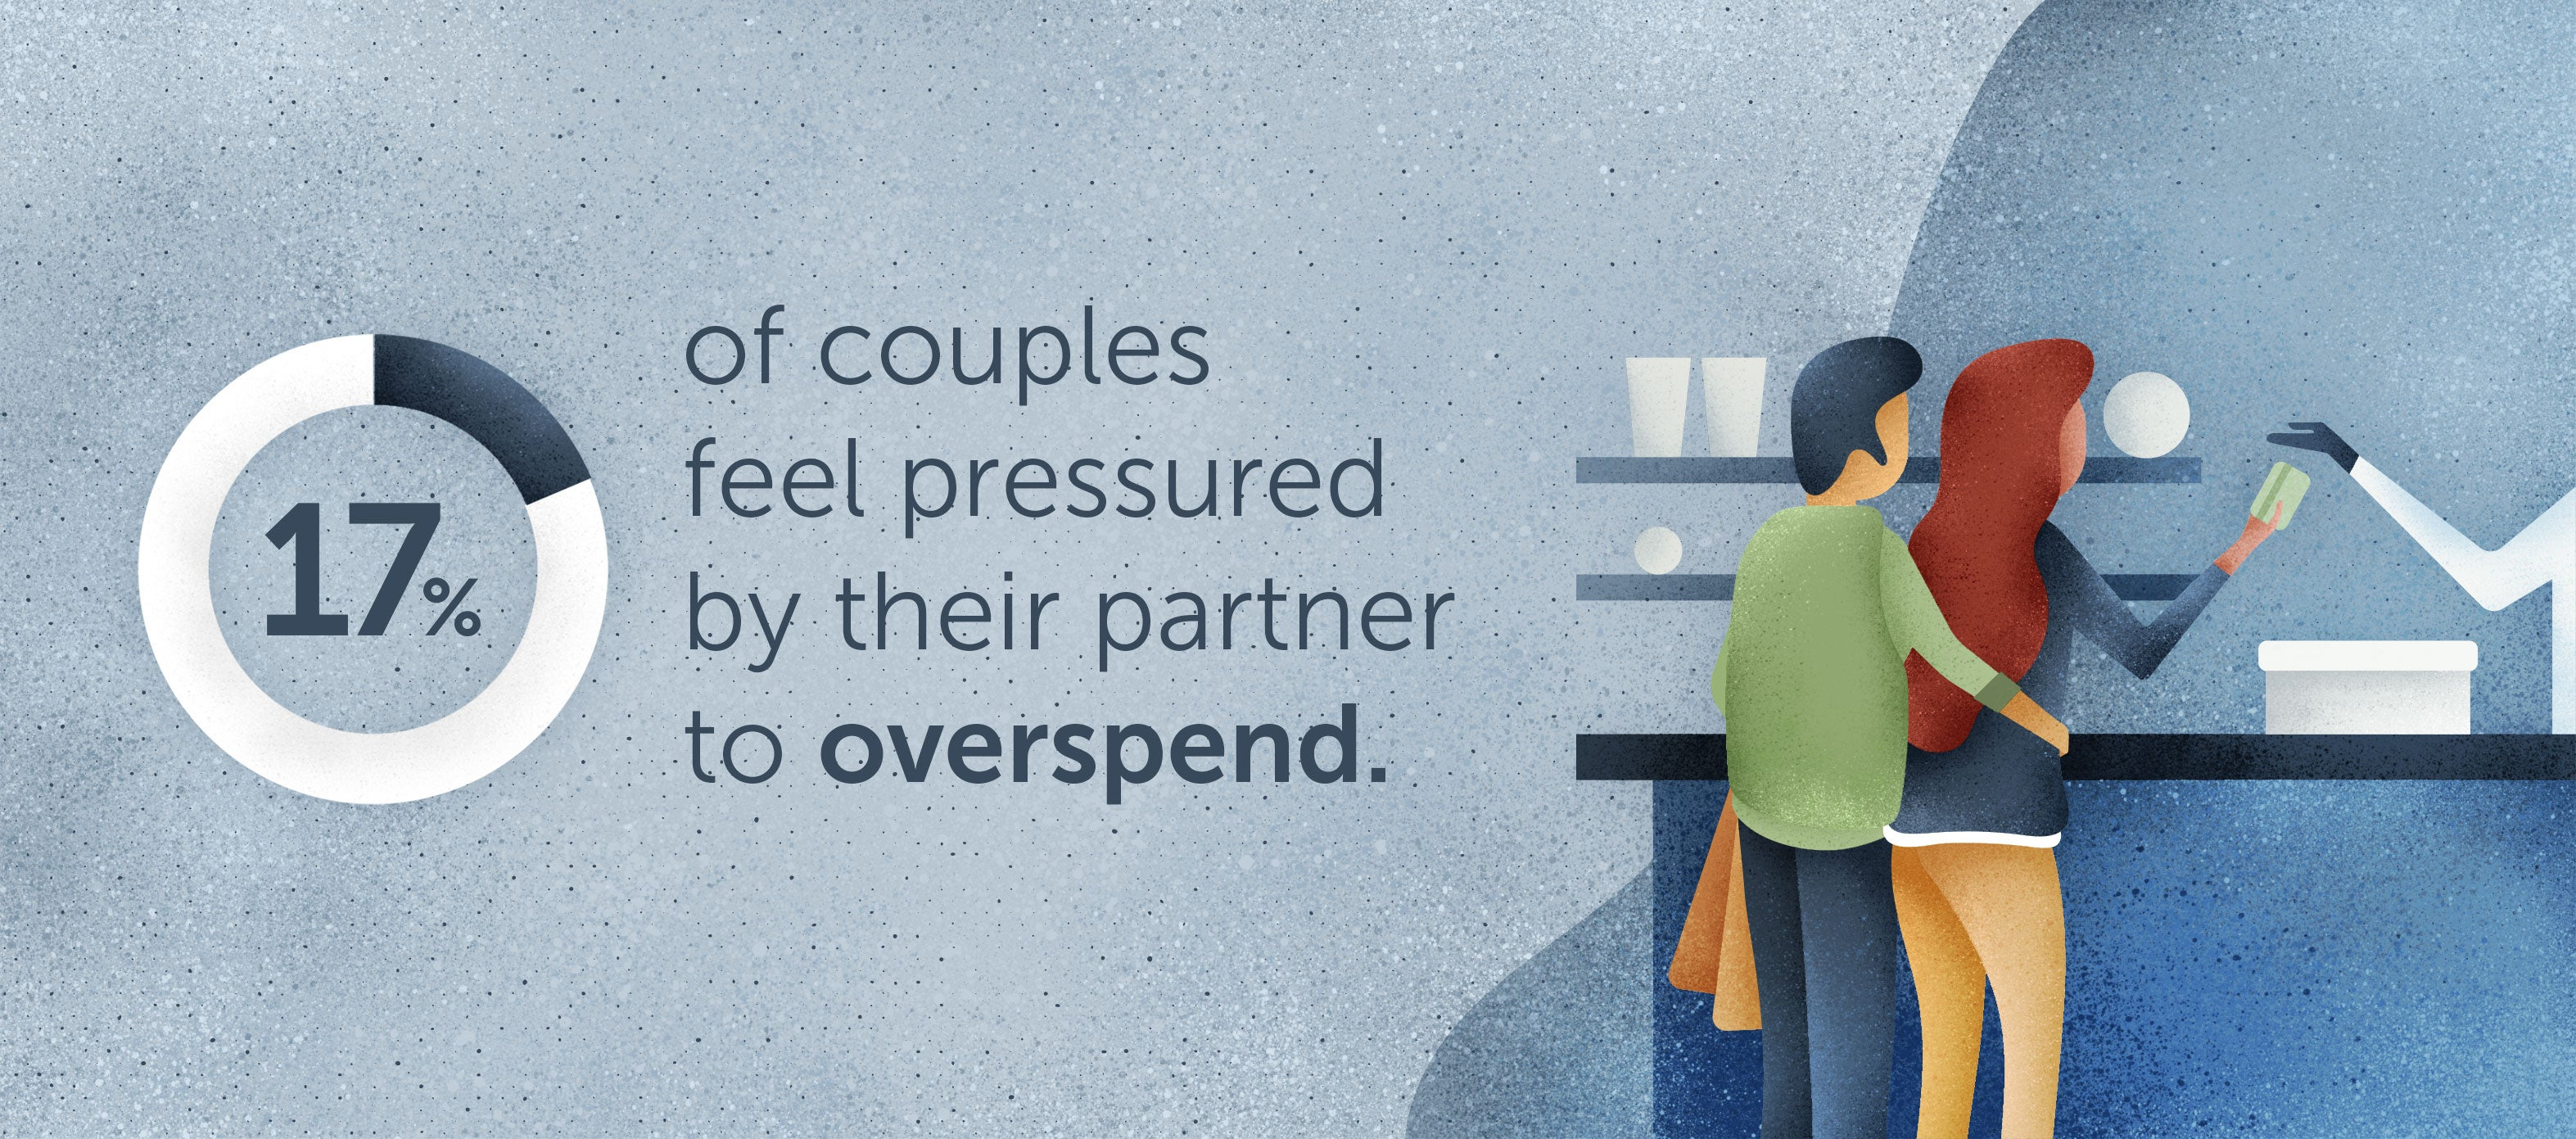 17% of partners feel pressured to spend